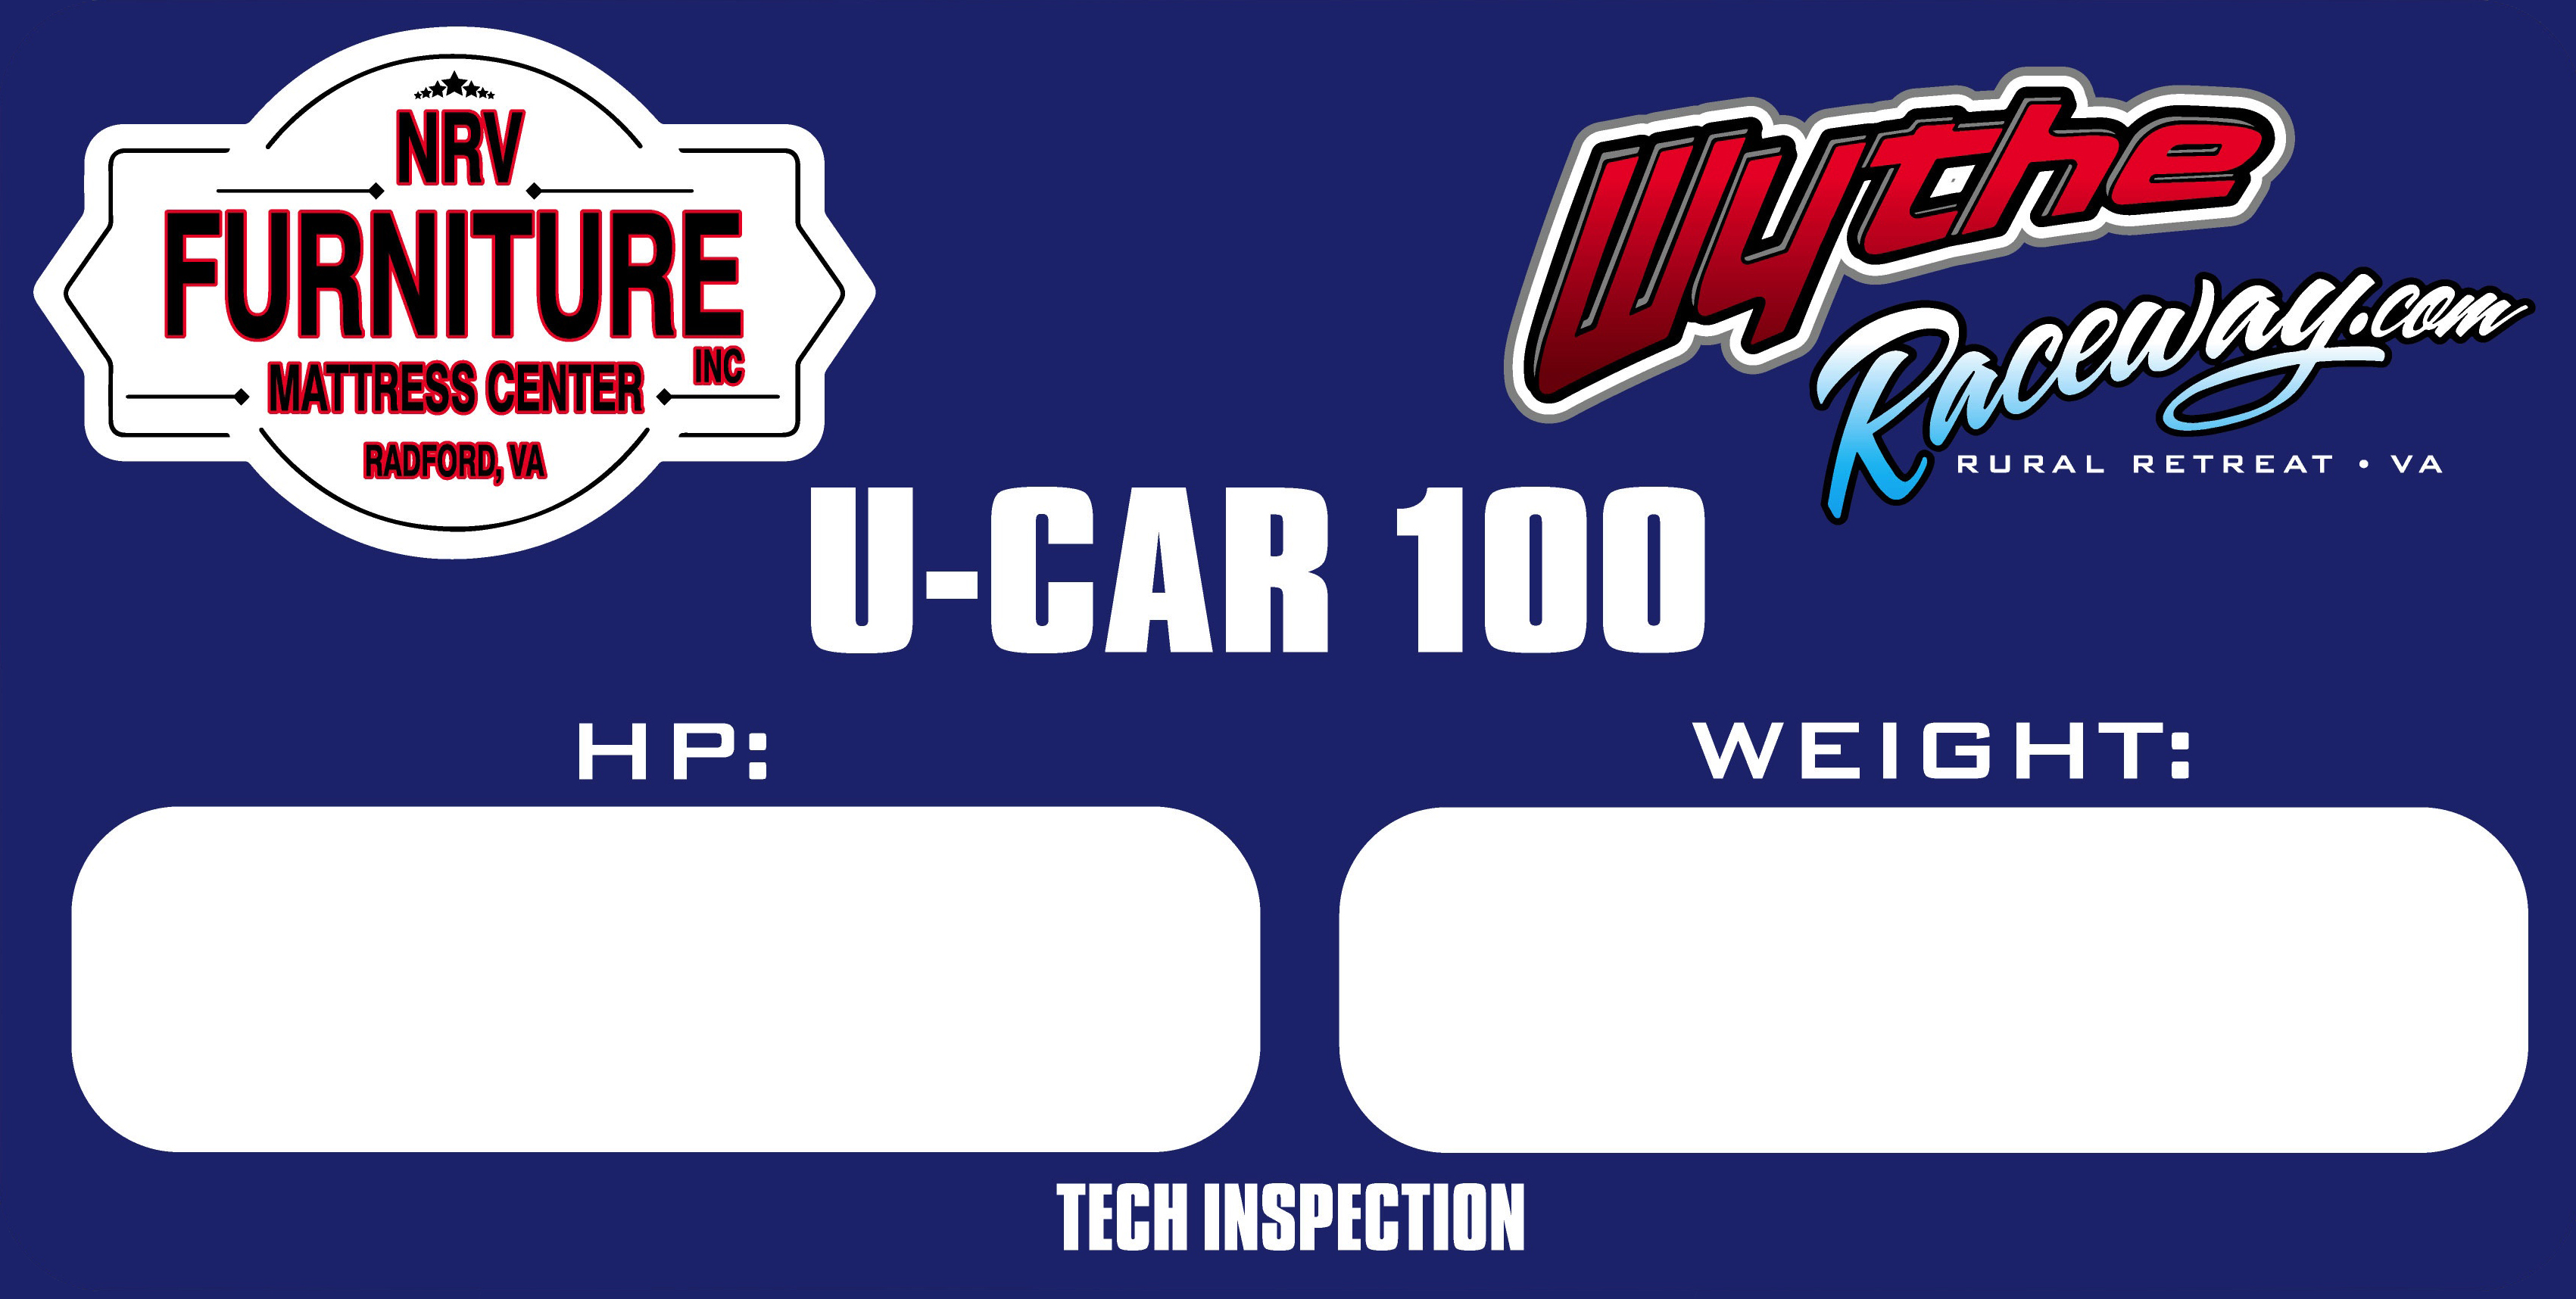 UCAR Pre-Tech – Saturday 4:30pm Pre-Race Tech Inspection for NRV UCARs.